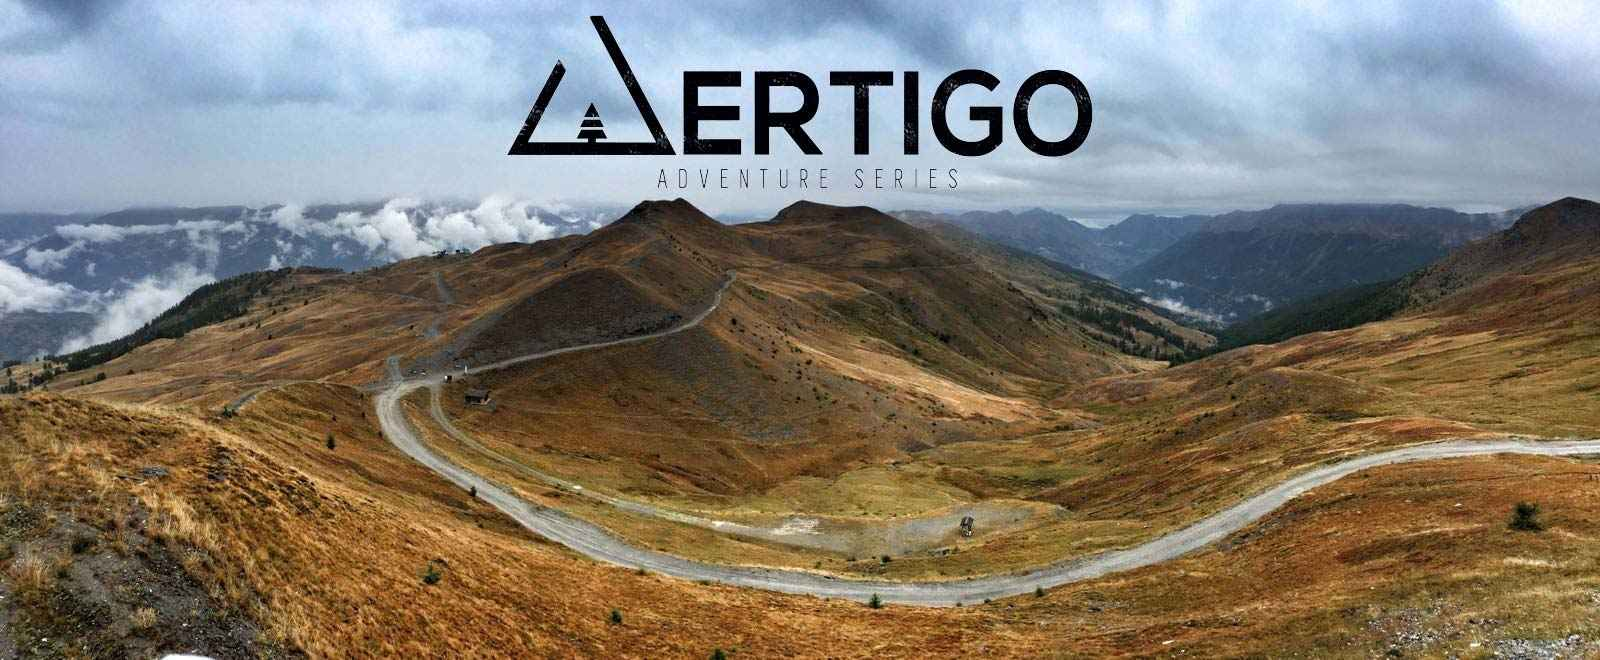 Vertigo Adventure Series